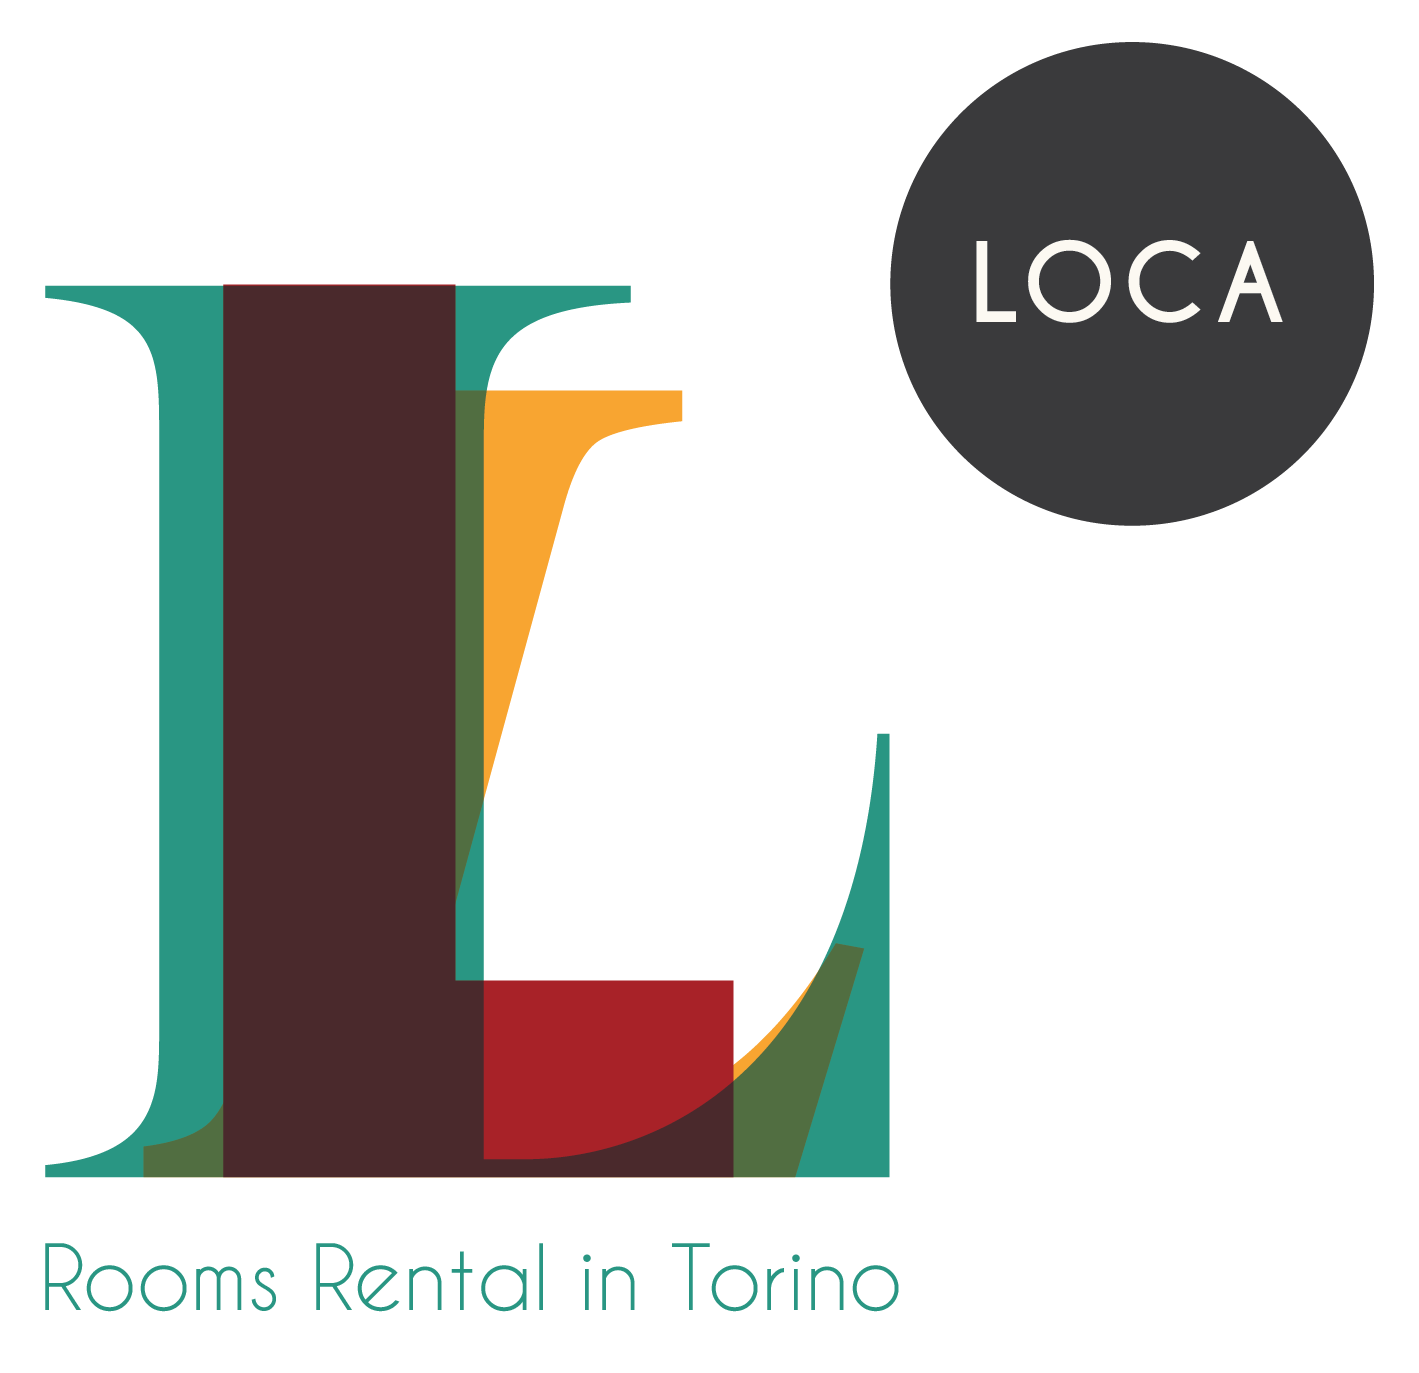 Rooms Rental in Torino